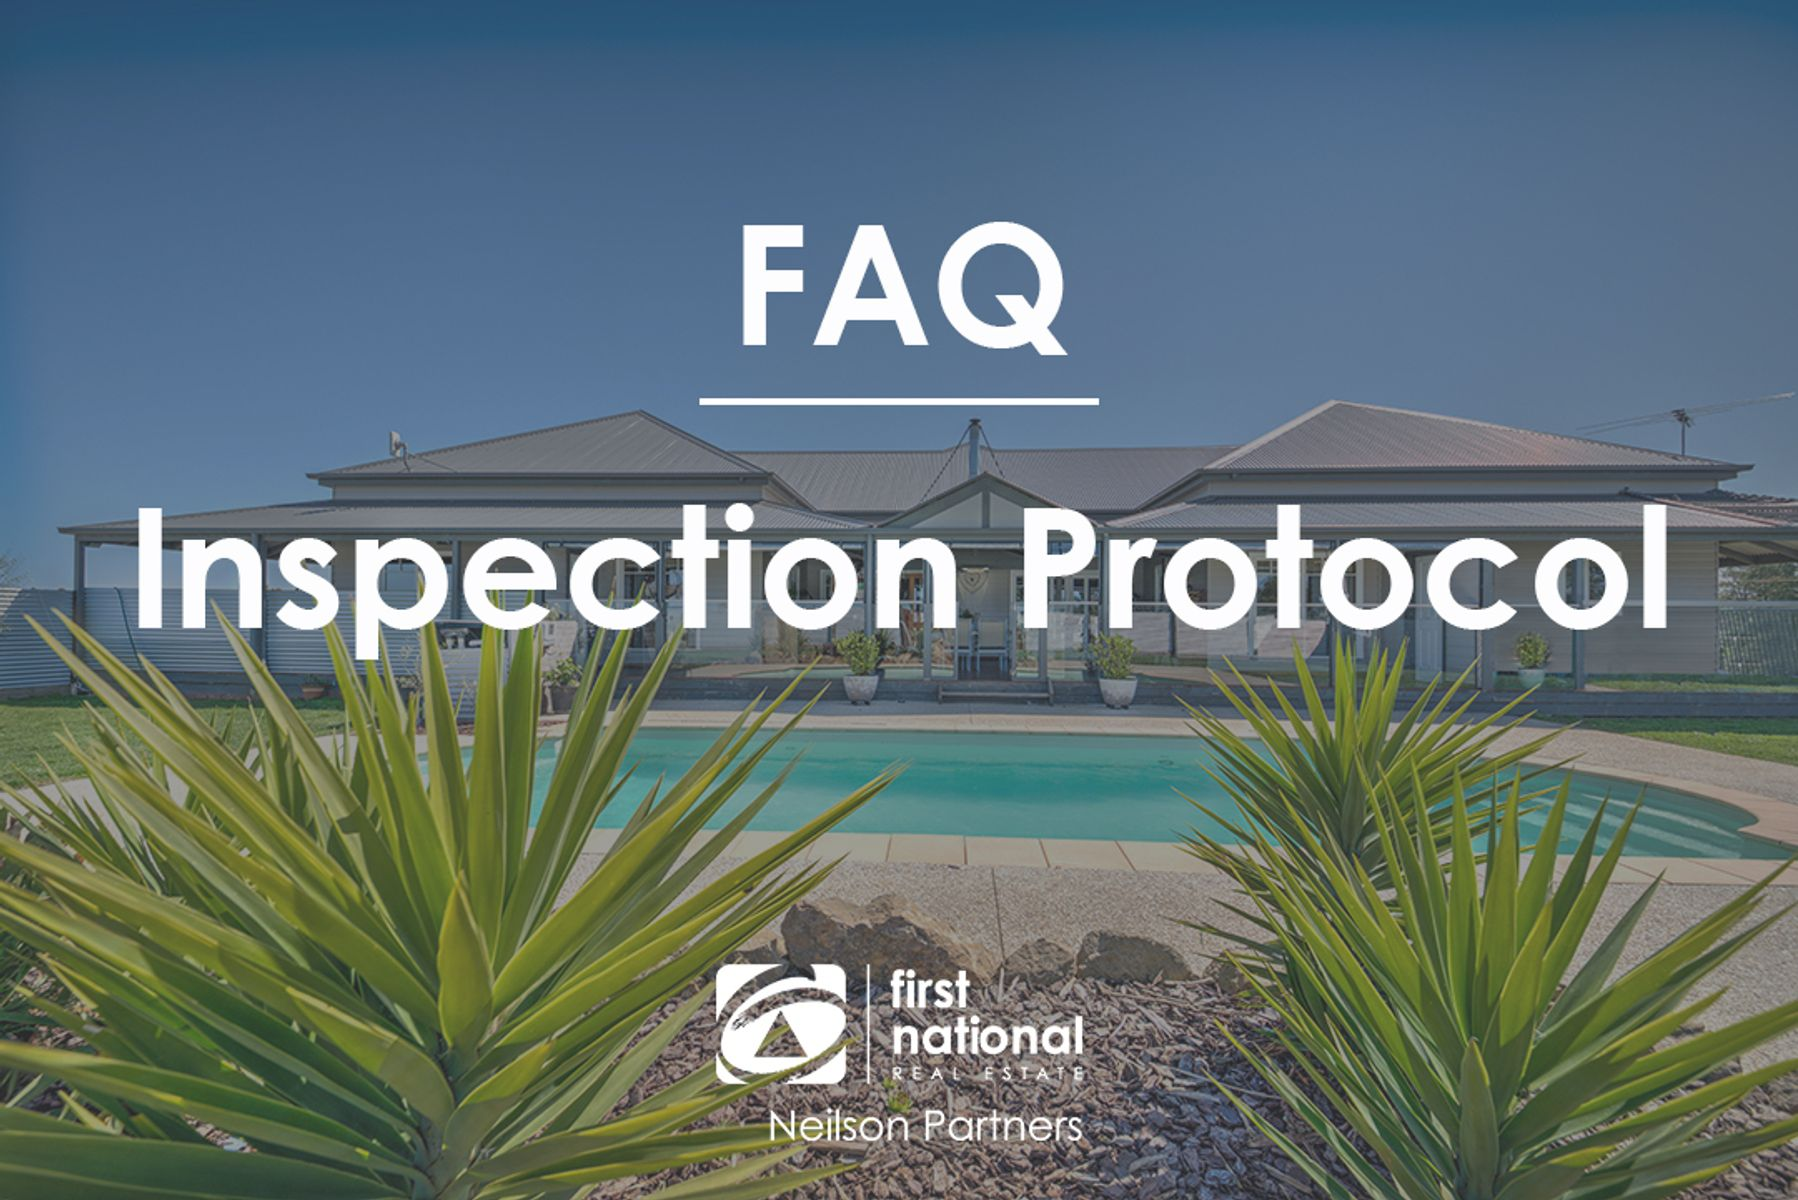 Inspection Protocol